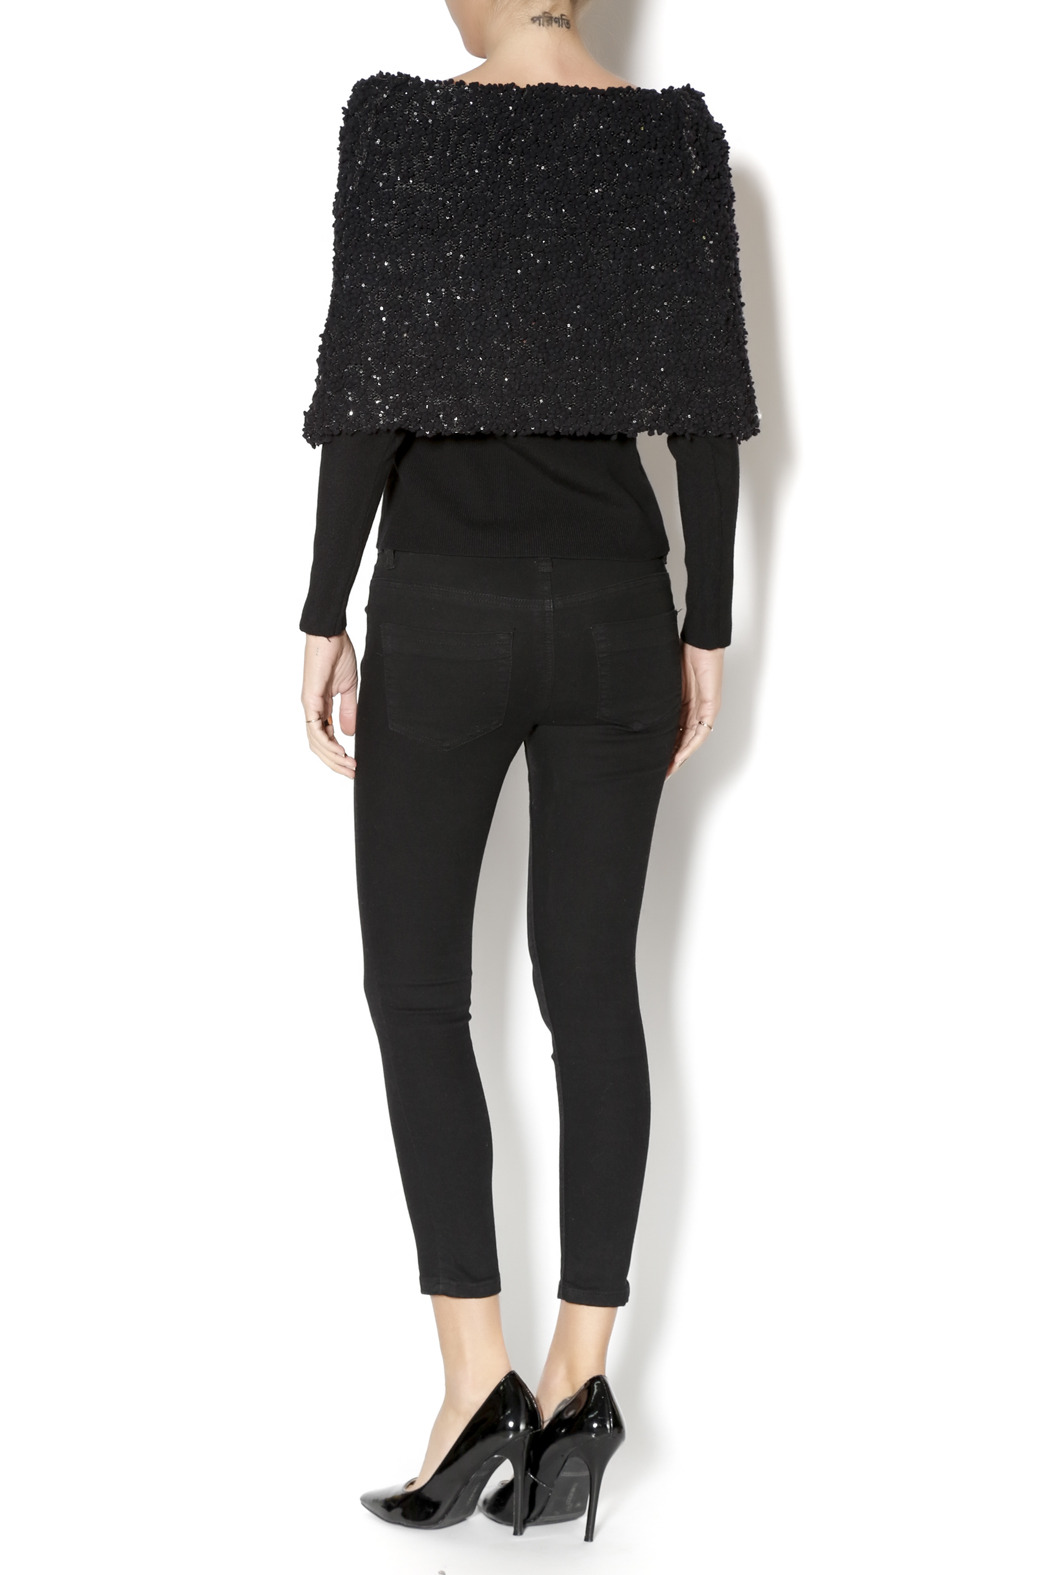 Talk of the Walk Textured Shimmer Sweater - Side Cropped Image